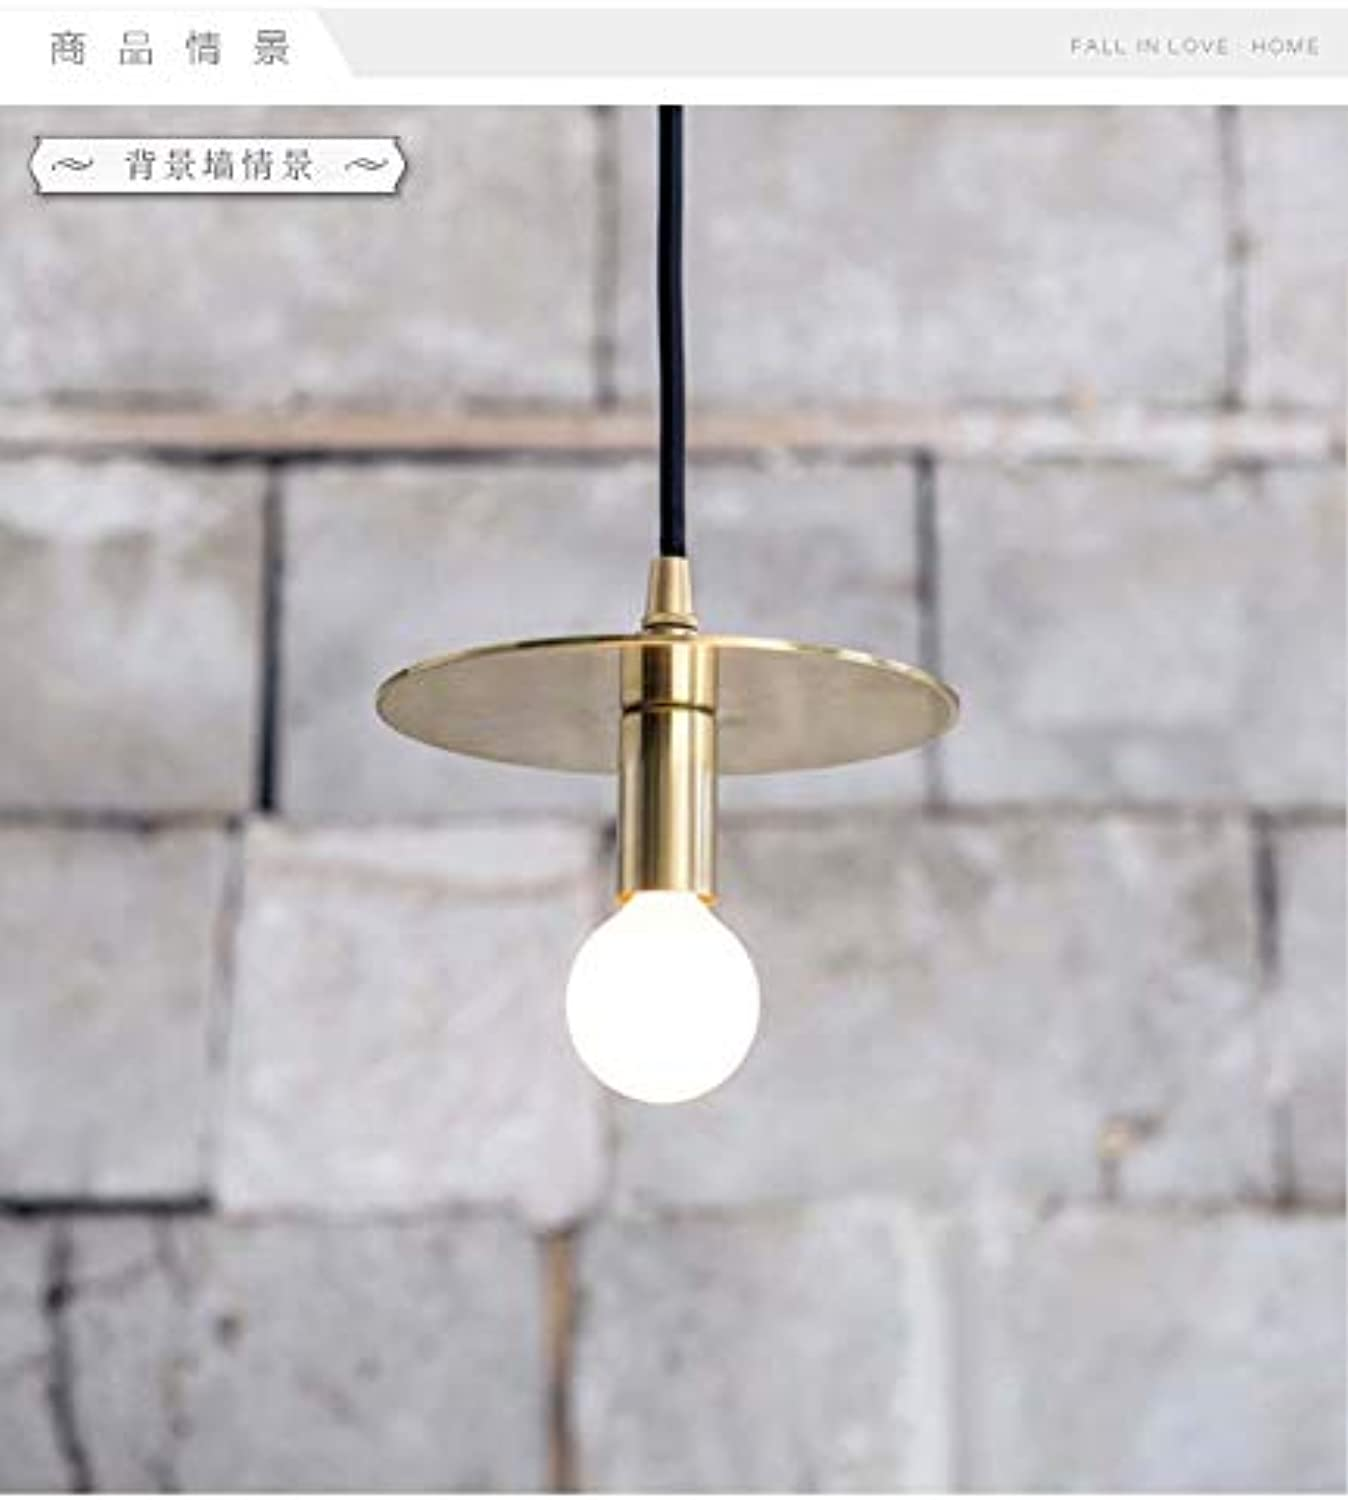 Hngeleuchte Modern Vintage Copper Iron Gold Pendant Lights Caferoom Bar Lamp Single Glass Pendant Lamps Decoration Indoor Lighting E27 Gold Farbe